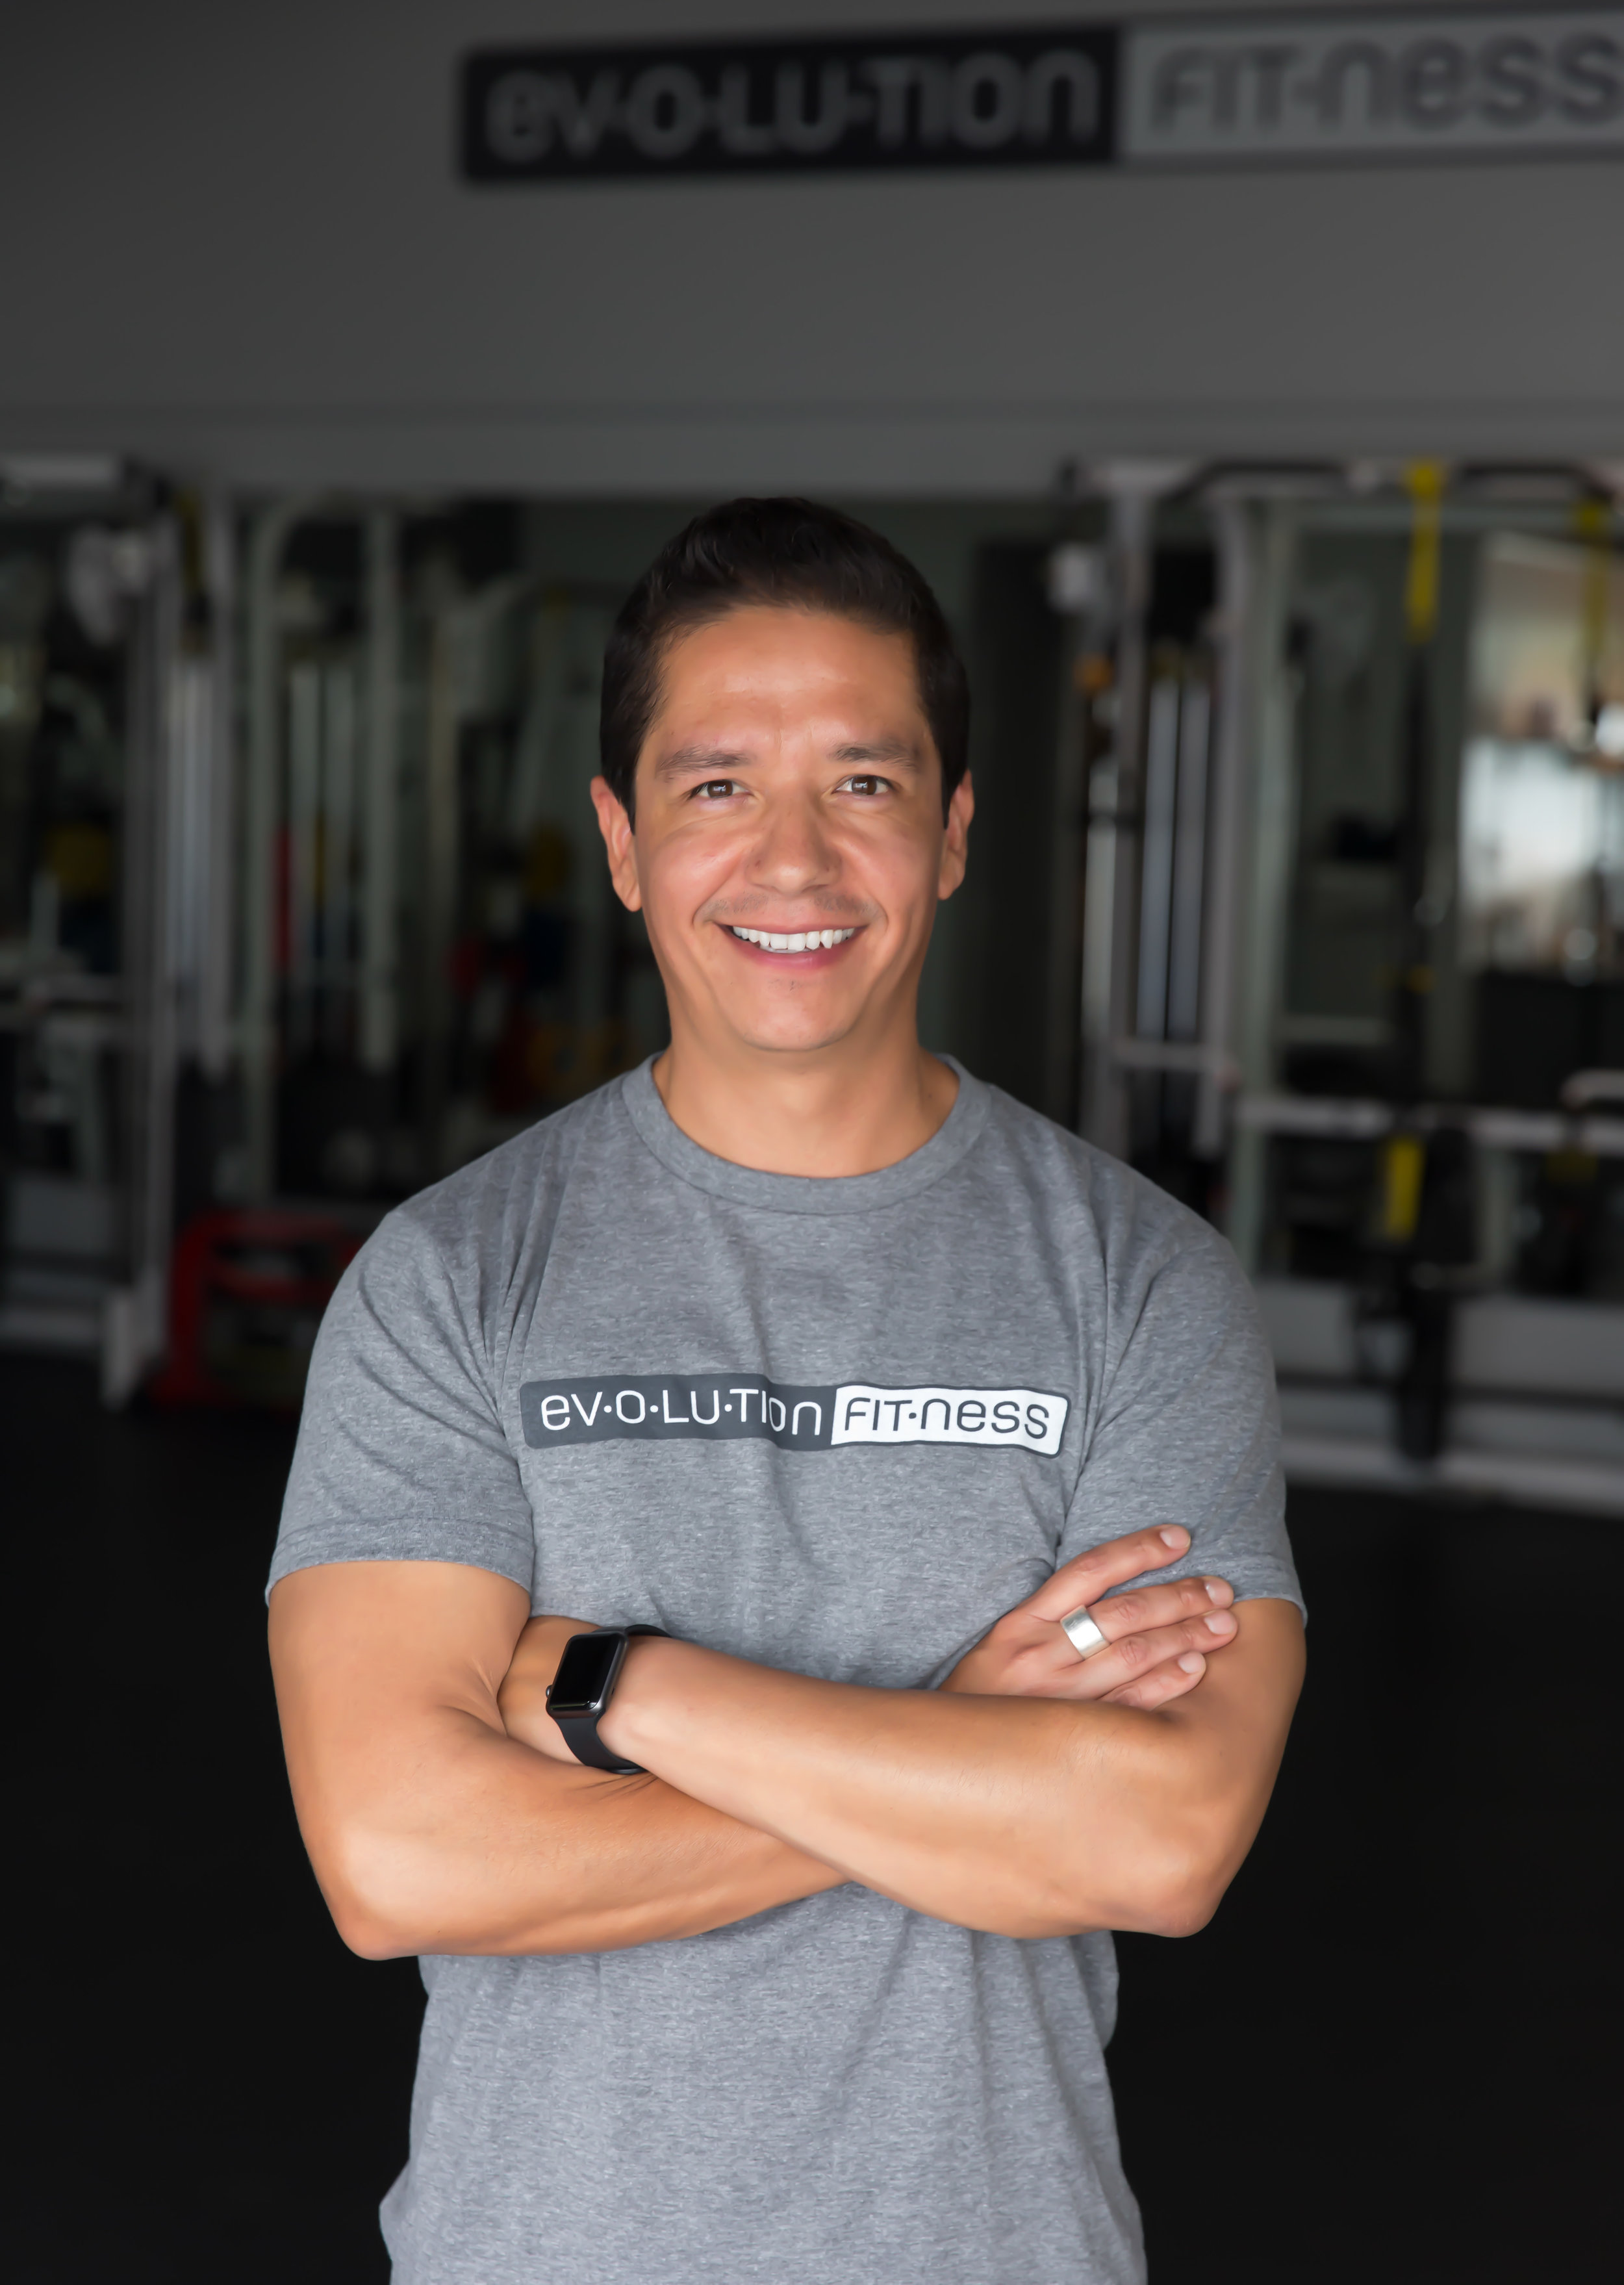 Dr. Izzy Lira, D.C. (Owner) - Specializations:Sports Medicine ChiropracticPrivate/Group FitnessMusculoskeletal RehabilitationInjury PreventionStrength TrainingDr. Izzy knows the human body. He is a Board Certified Chiropractor & Certified Personal Trainer with an emphasis in Sports Medicine. He is experienced in working with clients of all ages & fitness levels. Dr. Izzy approaches training from the angle of a health care professional and focuses on encouraging each client to surpass their physical & mental boundaries so that they can reach a higher level of health and wellness.Contact